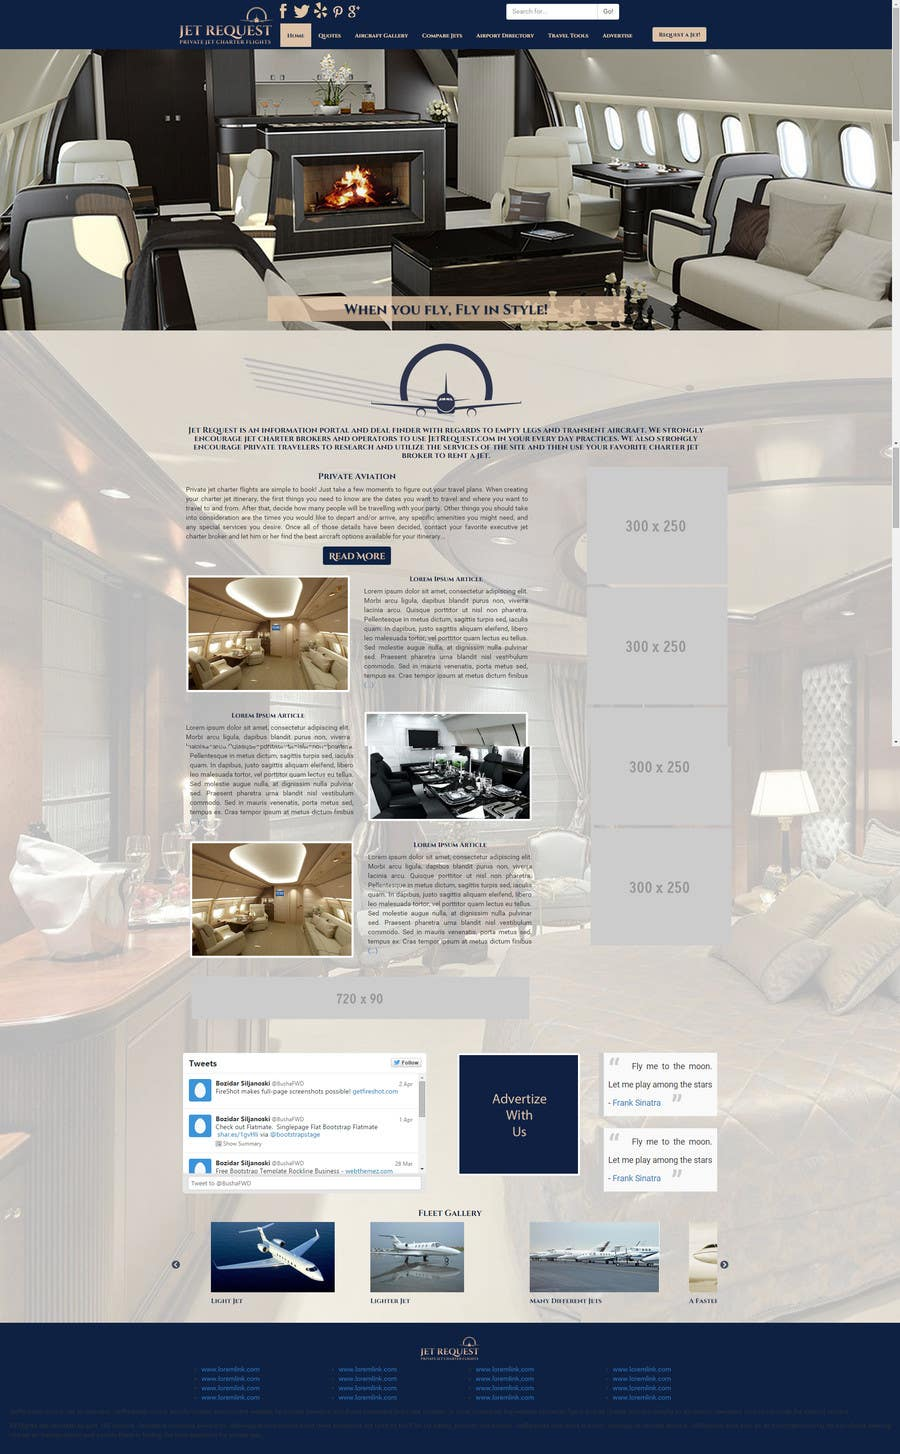 Konkurrenceindlæg #                                        18                                      for                                         Design a Website Mockup for Private Jet company